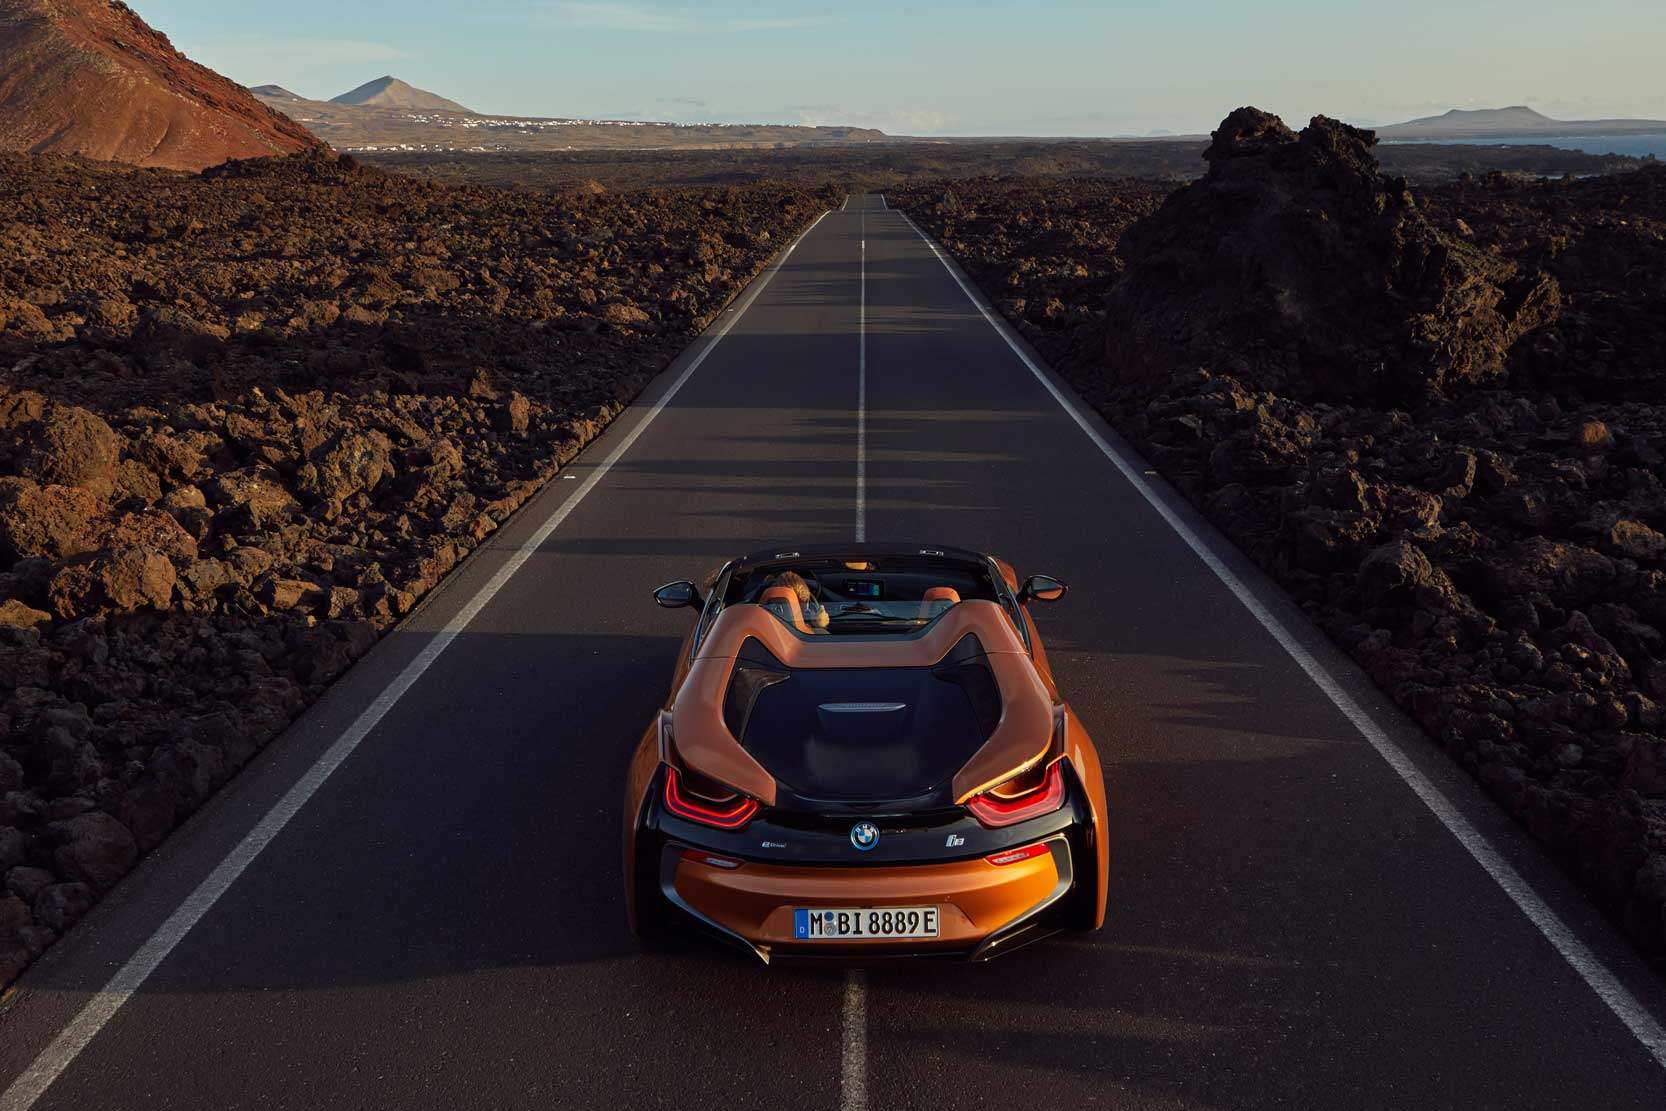 Exterieur_Bmw-i8-Roadster_9